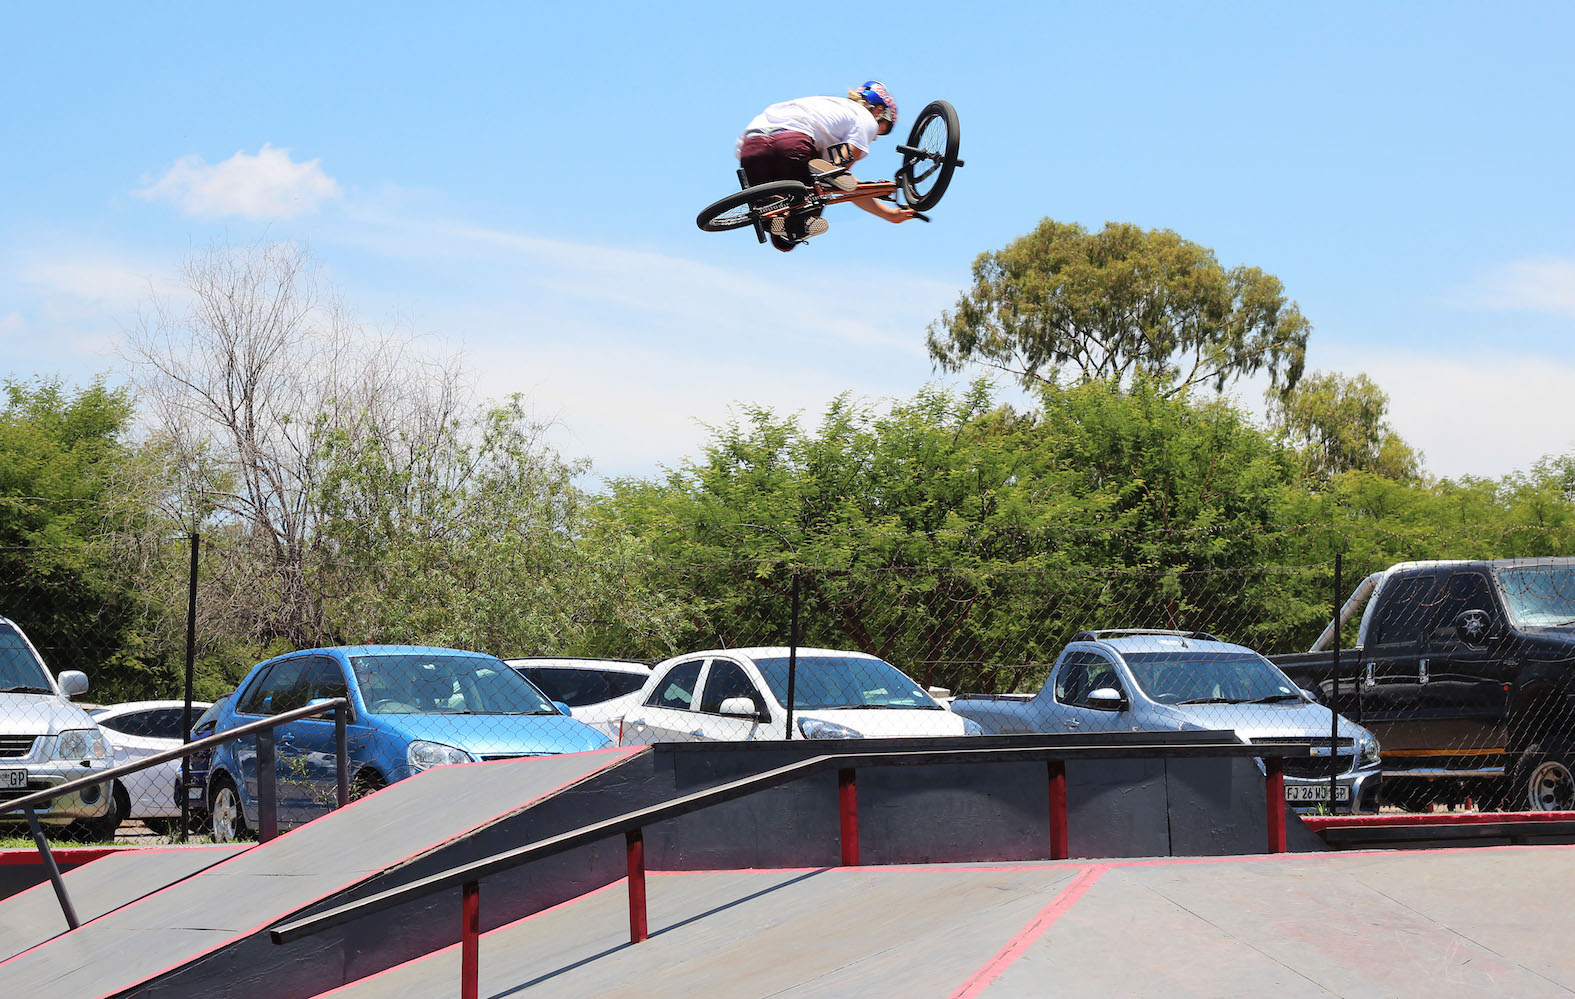 Murray Loubser 36o Table at the Evals BMX Jam 2017